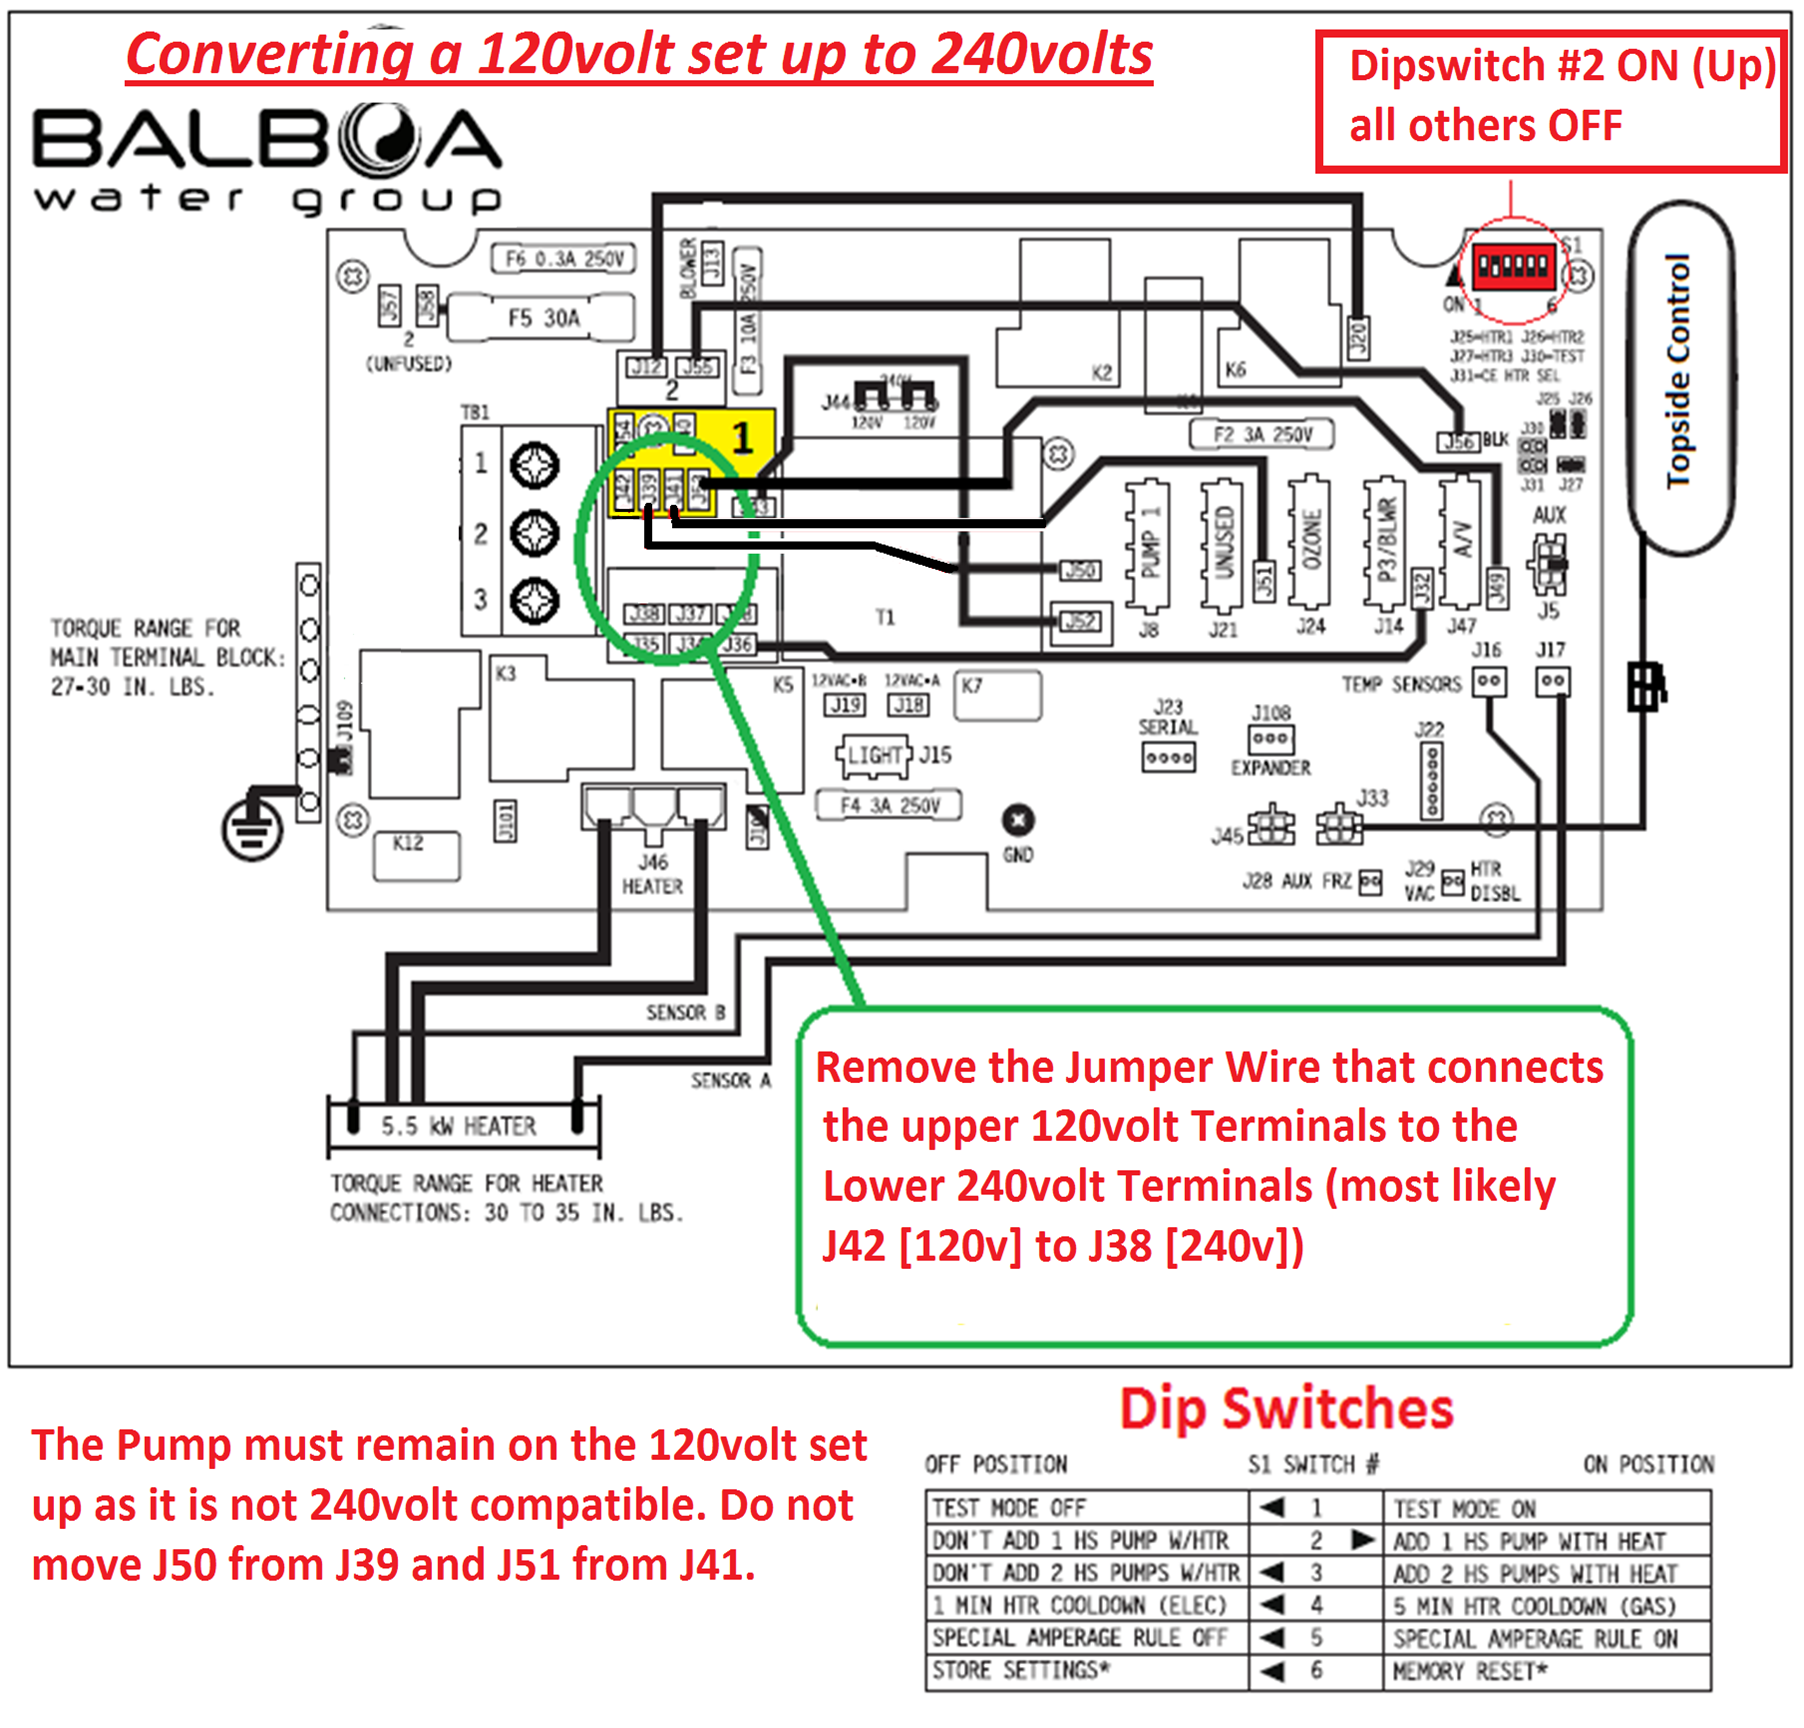 blob1461334674343?1461334695 electrical installation converting a 120v balboa bp to 240v wiring diagram bp501 balboa at n-0.co